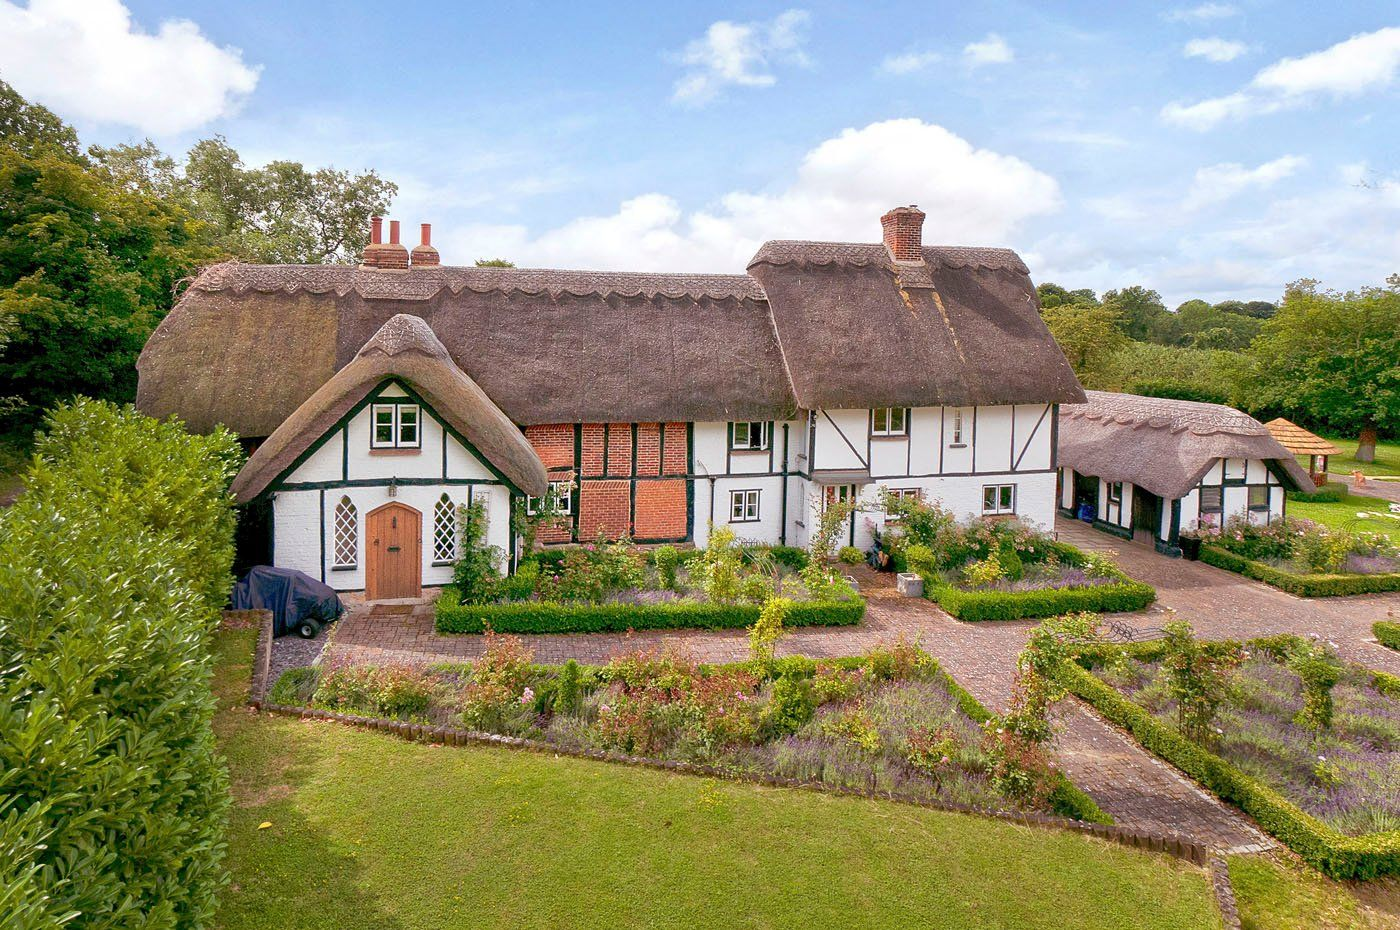 6 bedroom Detached for sale in Maidstone Detached house